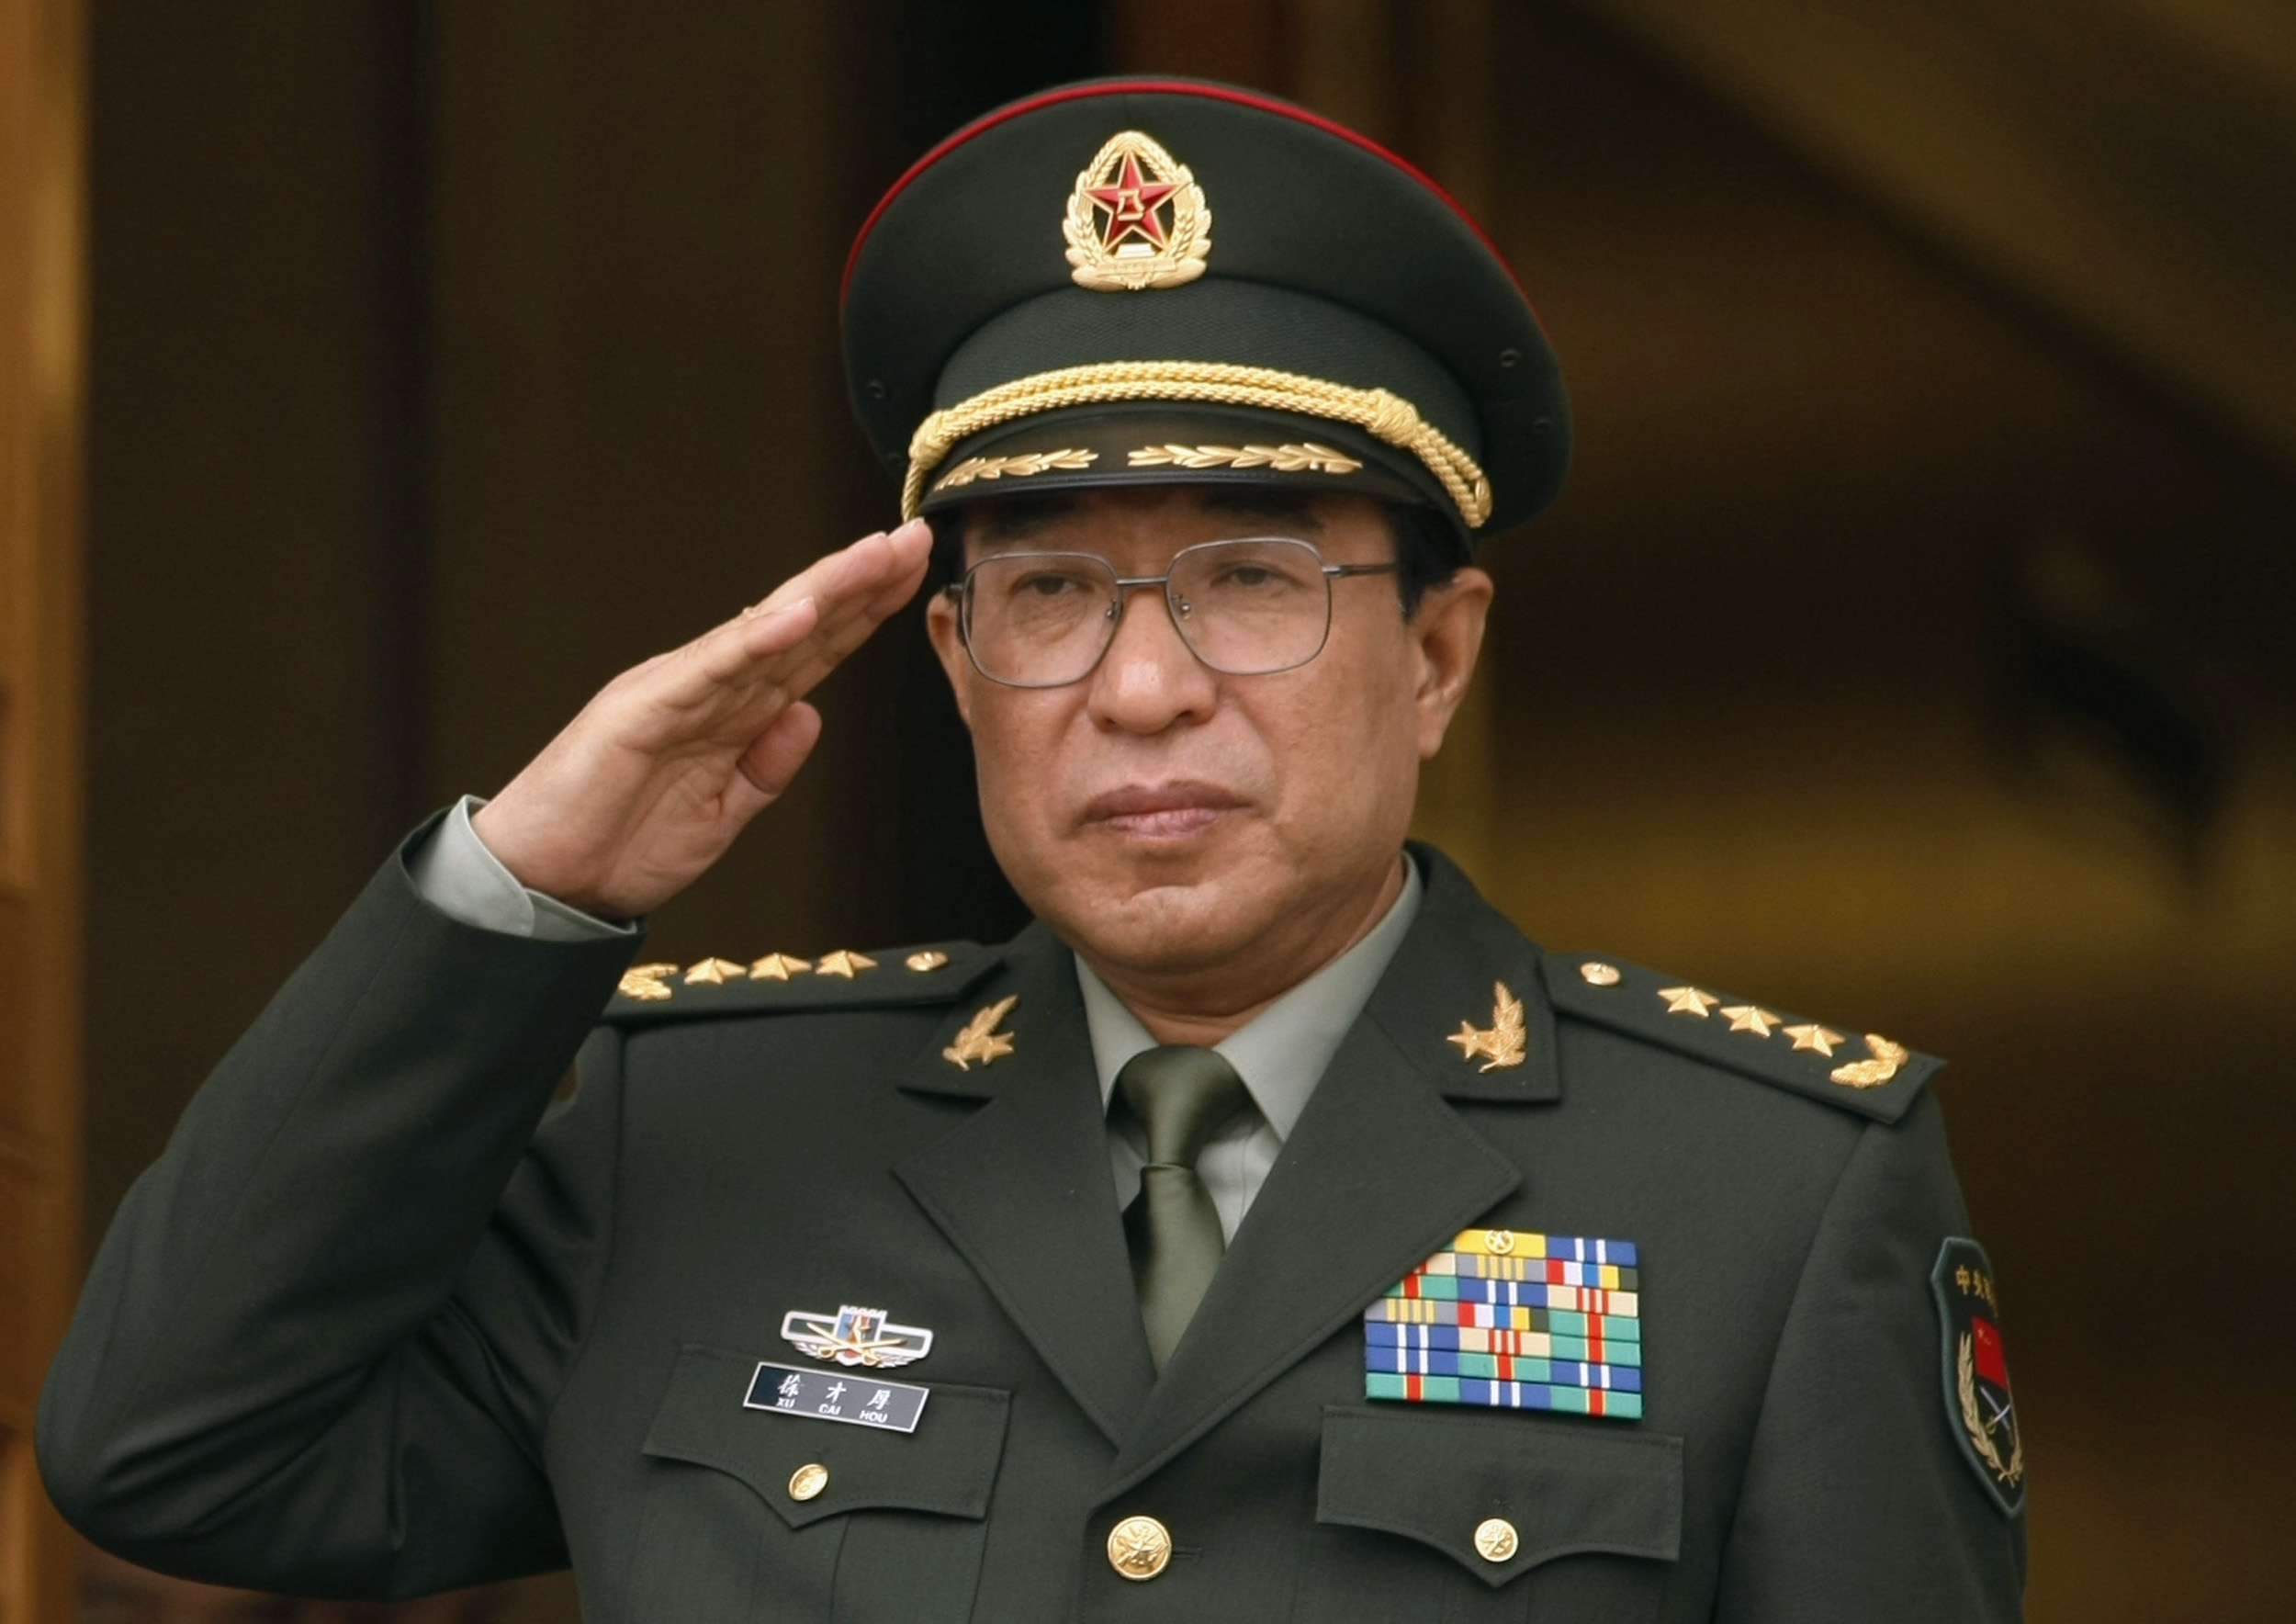 Over 10 trucks needed to haul top former China military officer's ill-gotten hoard